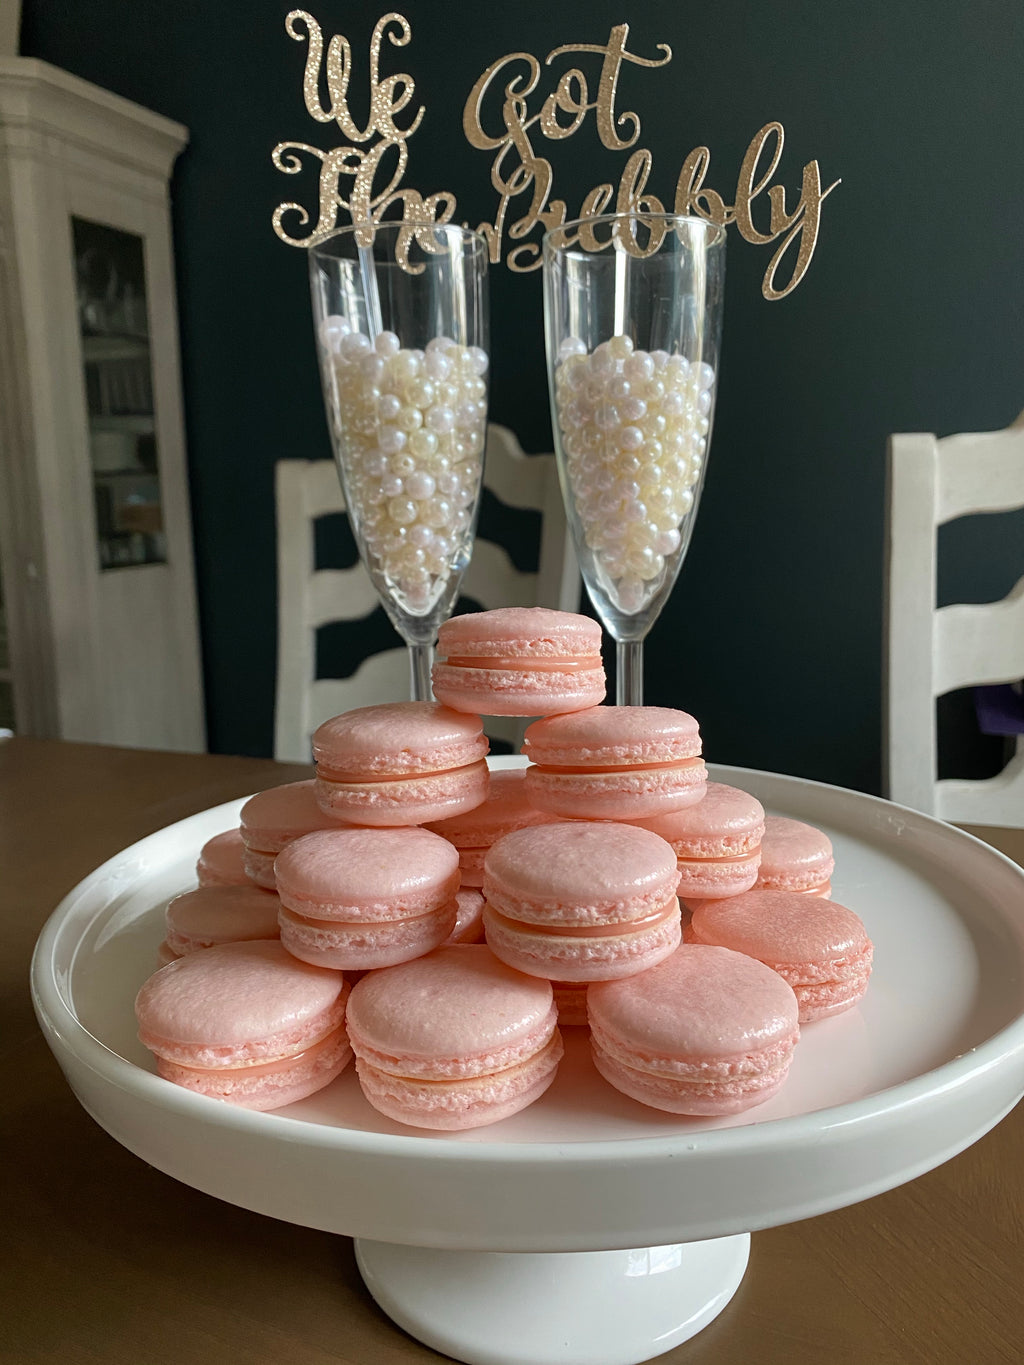 Rose and White Chocolate Ganache Macarons